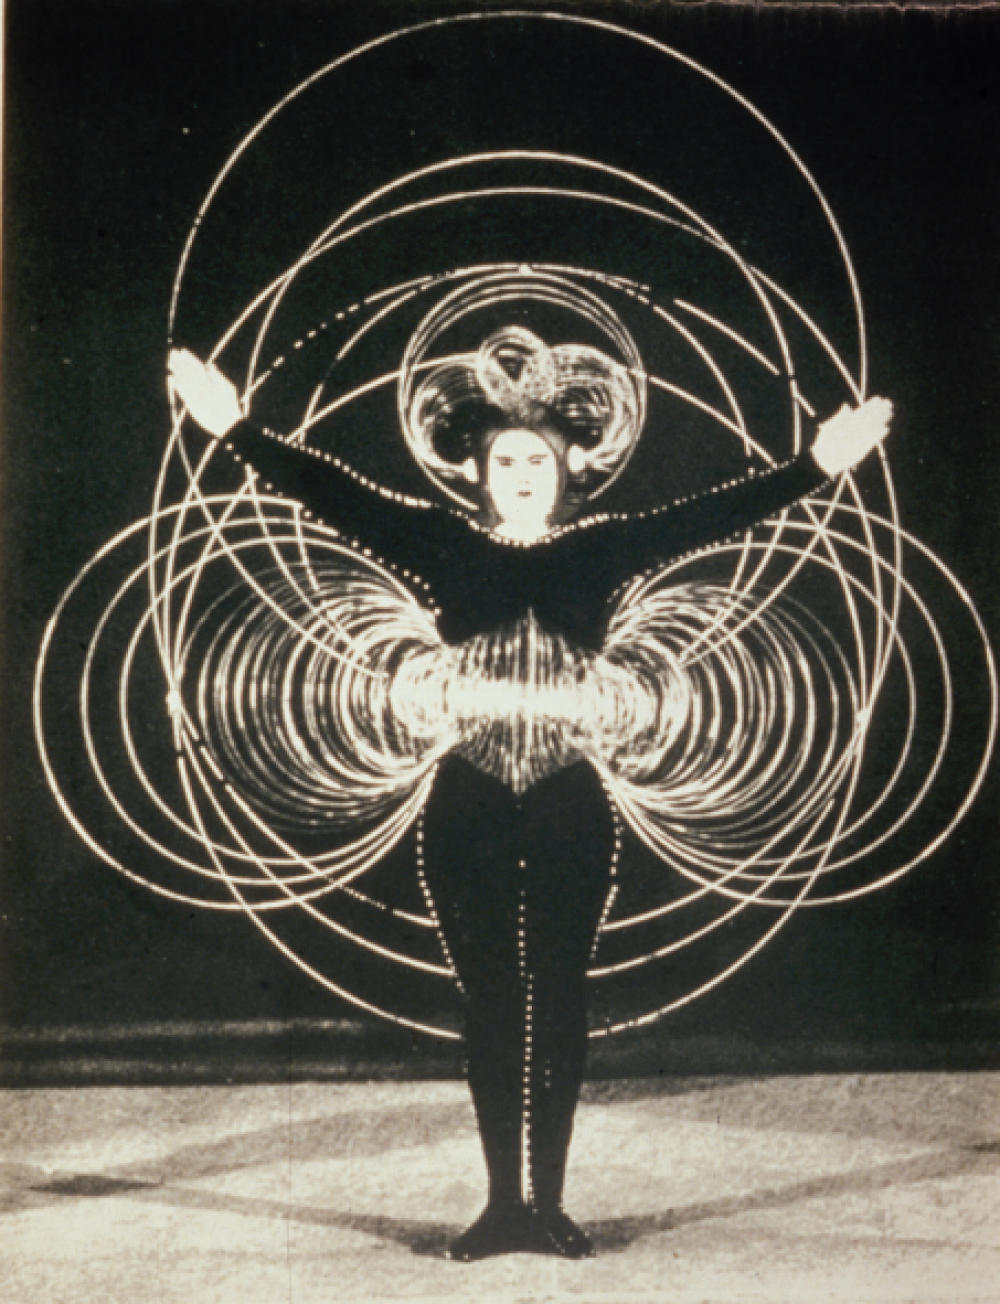 Oskar Schlemmer: The Triadic Ballet | people are dancing here.